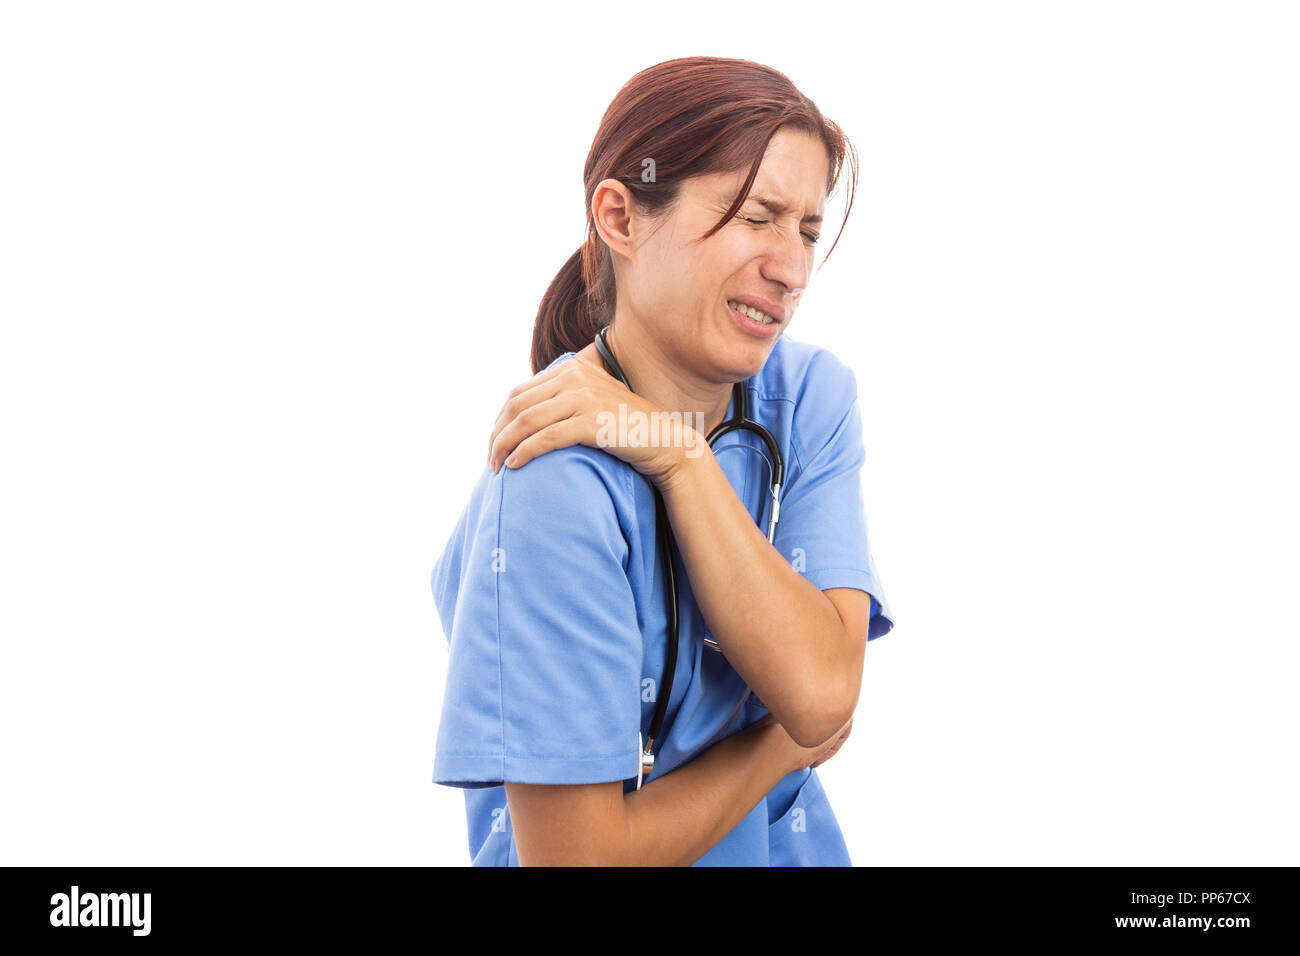 Injured hospital woman nurse or doctor holding painful shoulder and upset expression as clinic work injury concept isolated on white background - Stock Image